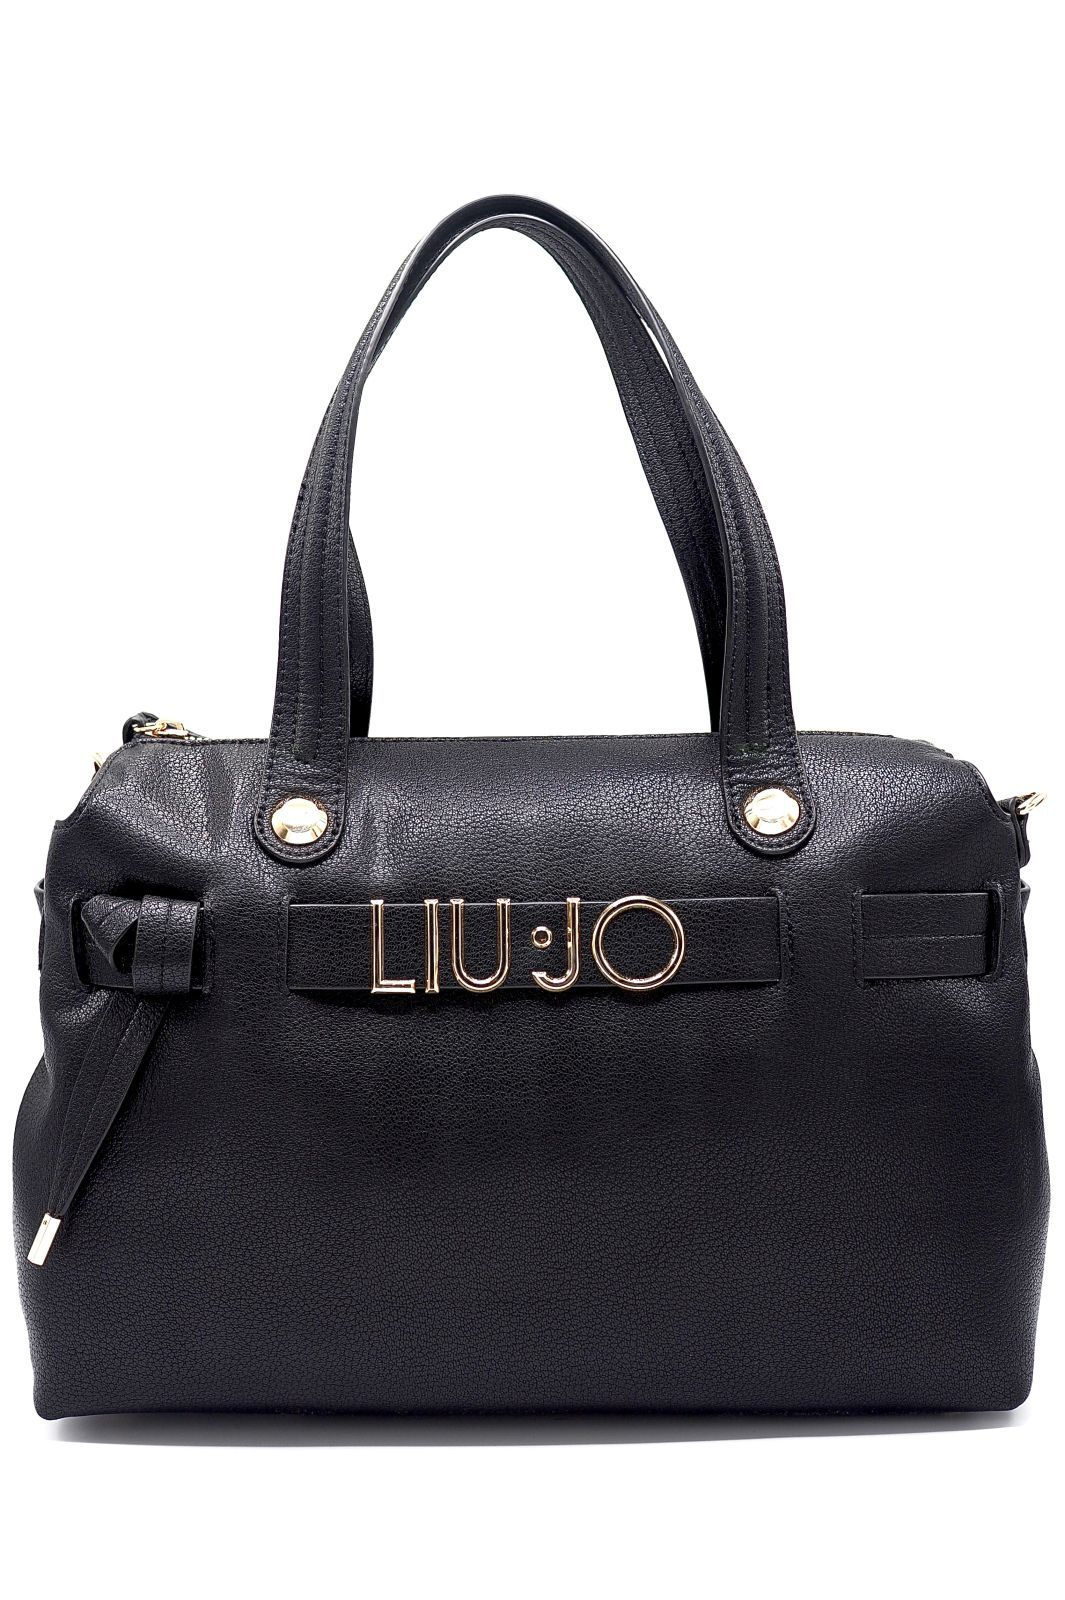 Liu Jo Accessories sac Noir femmes (LJo Acc-Grand sac logo or - AF0116 sac noir) - Marine | Much more than shoes